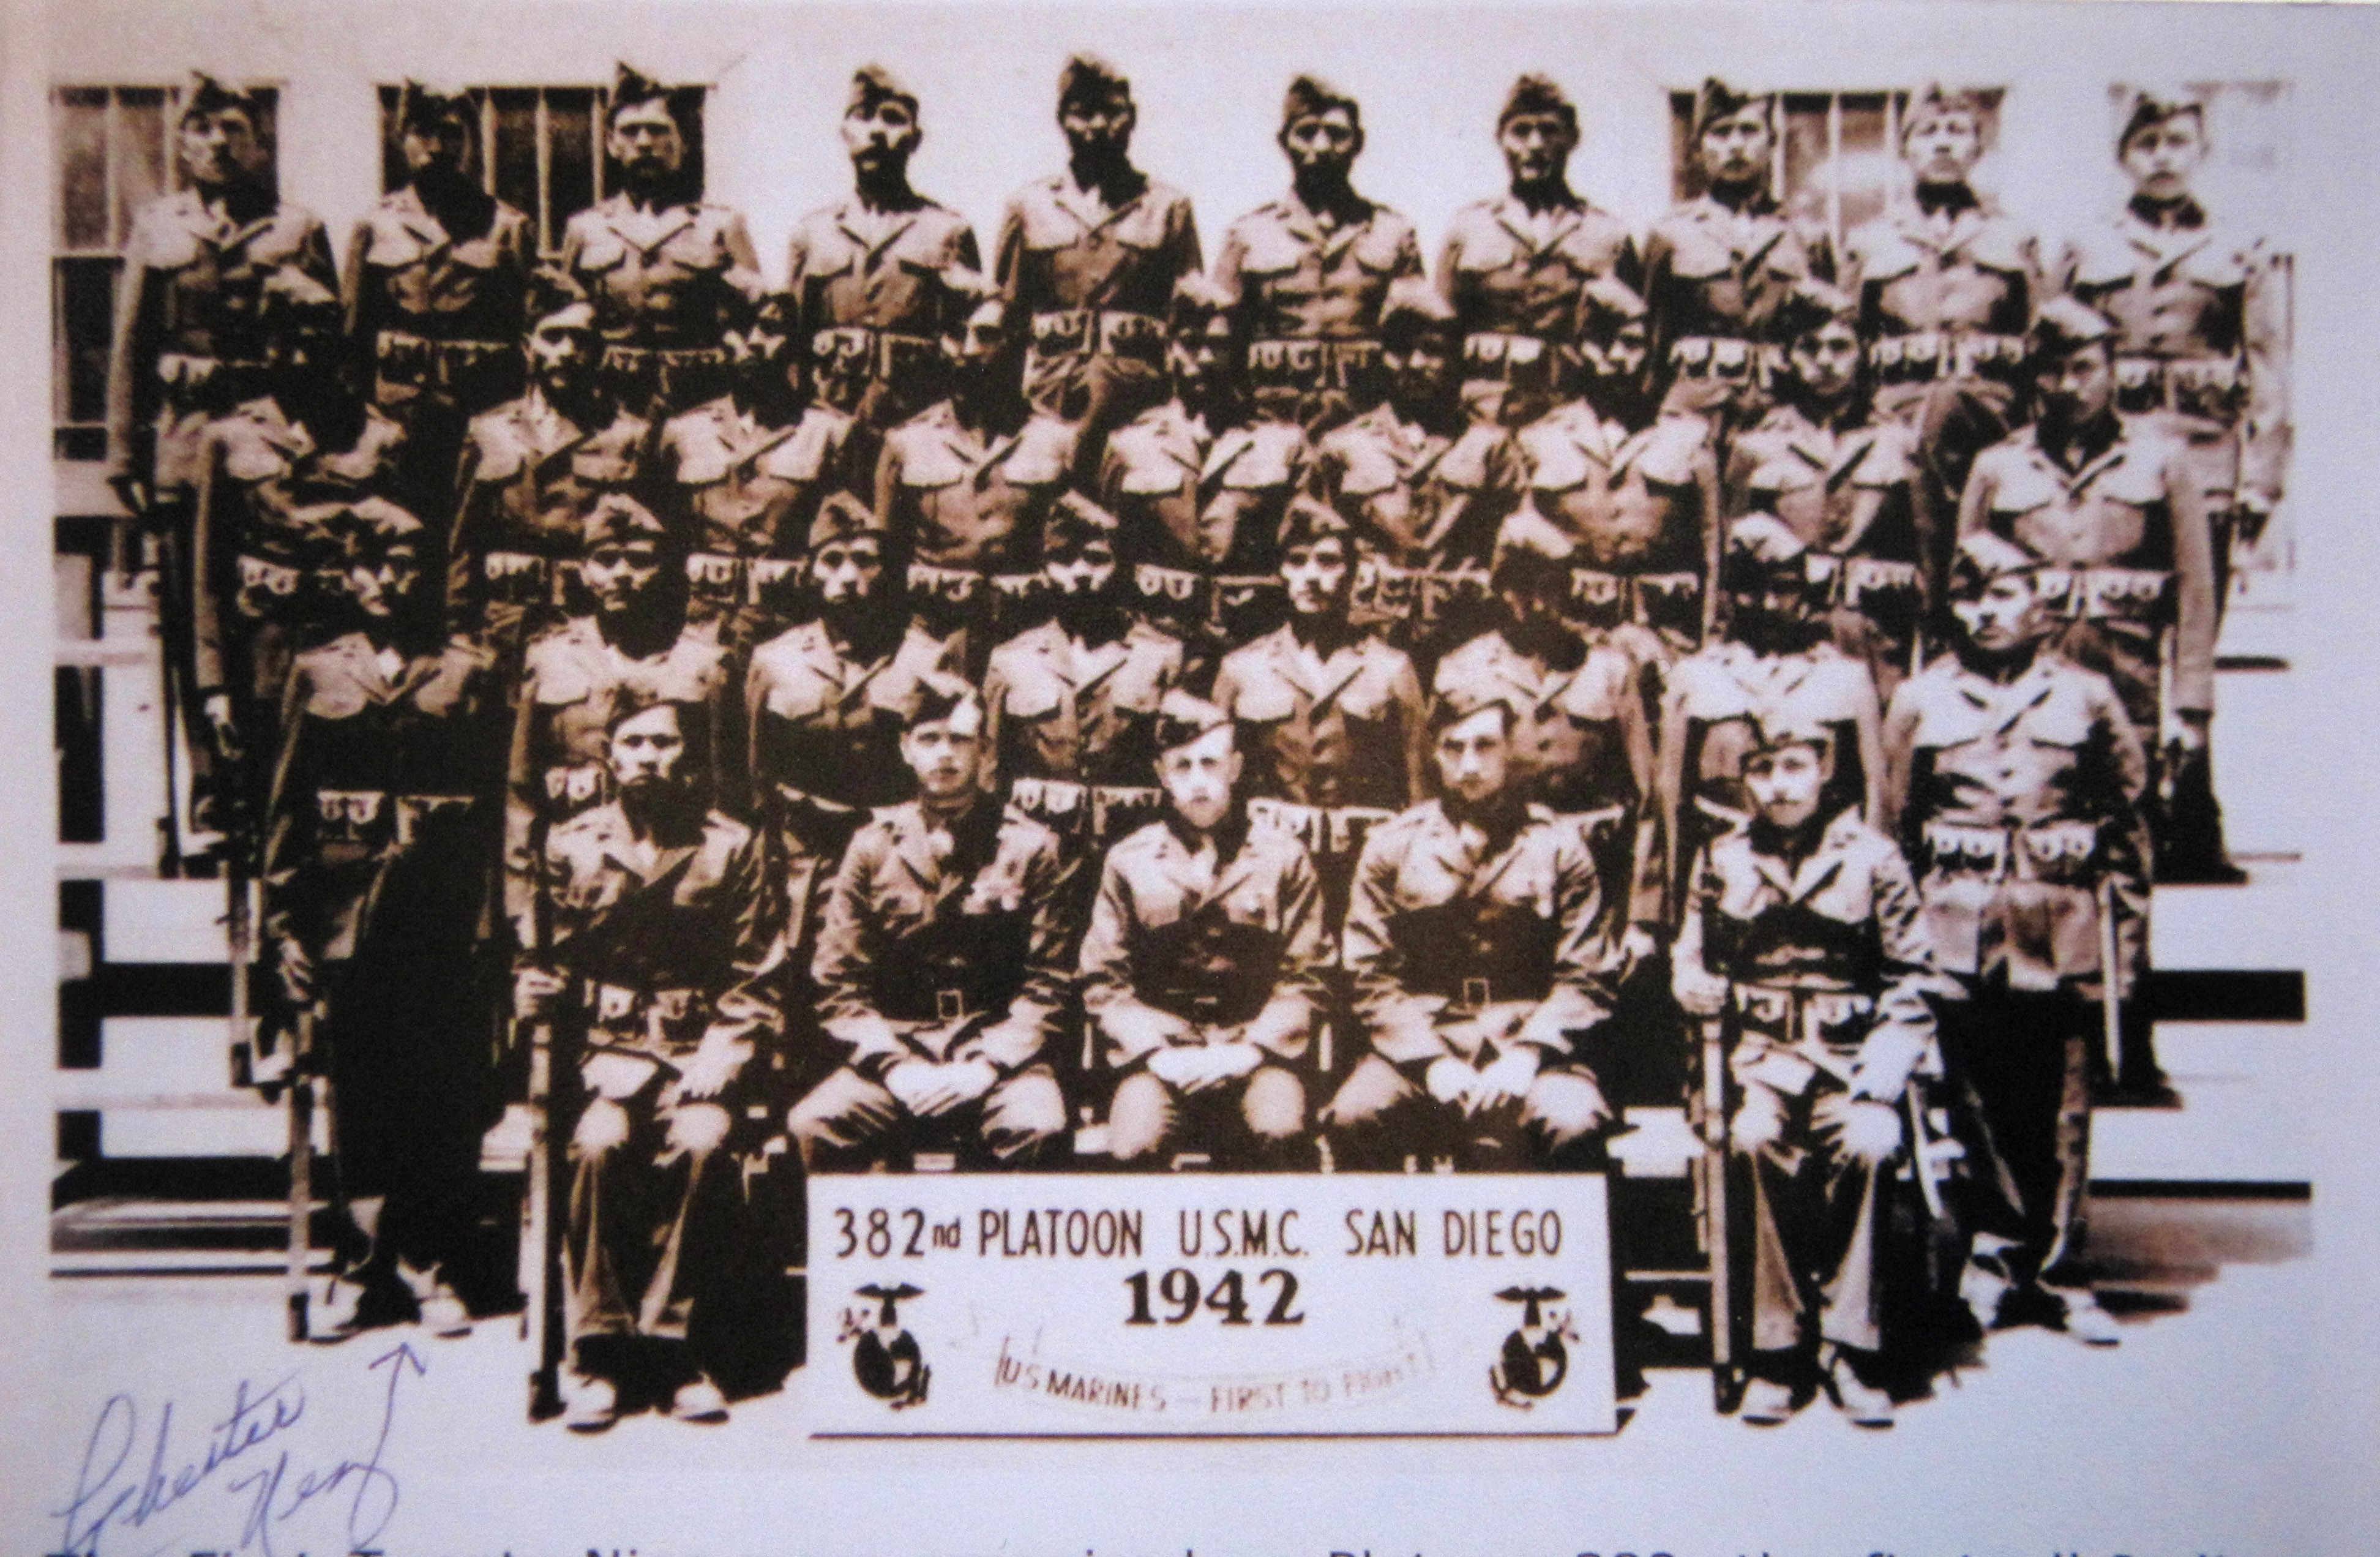 Last Man In Group Of Navajos That Developed An Unbreakable Code During World War Iis